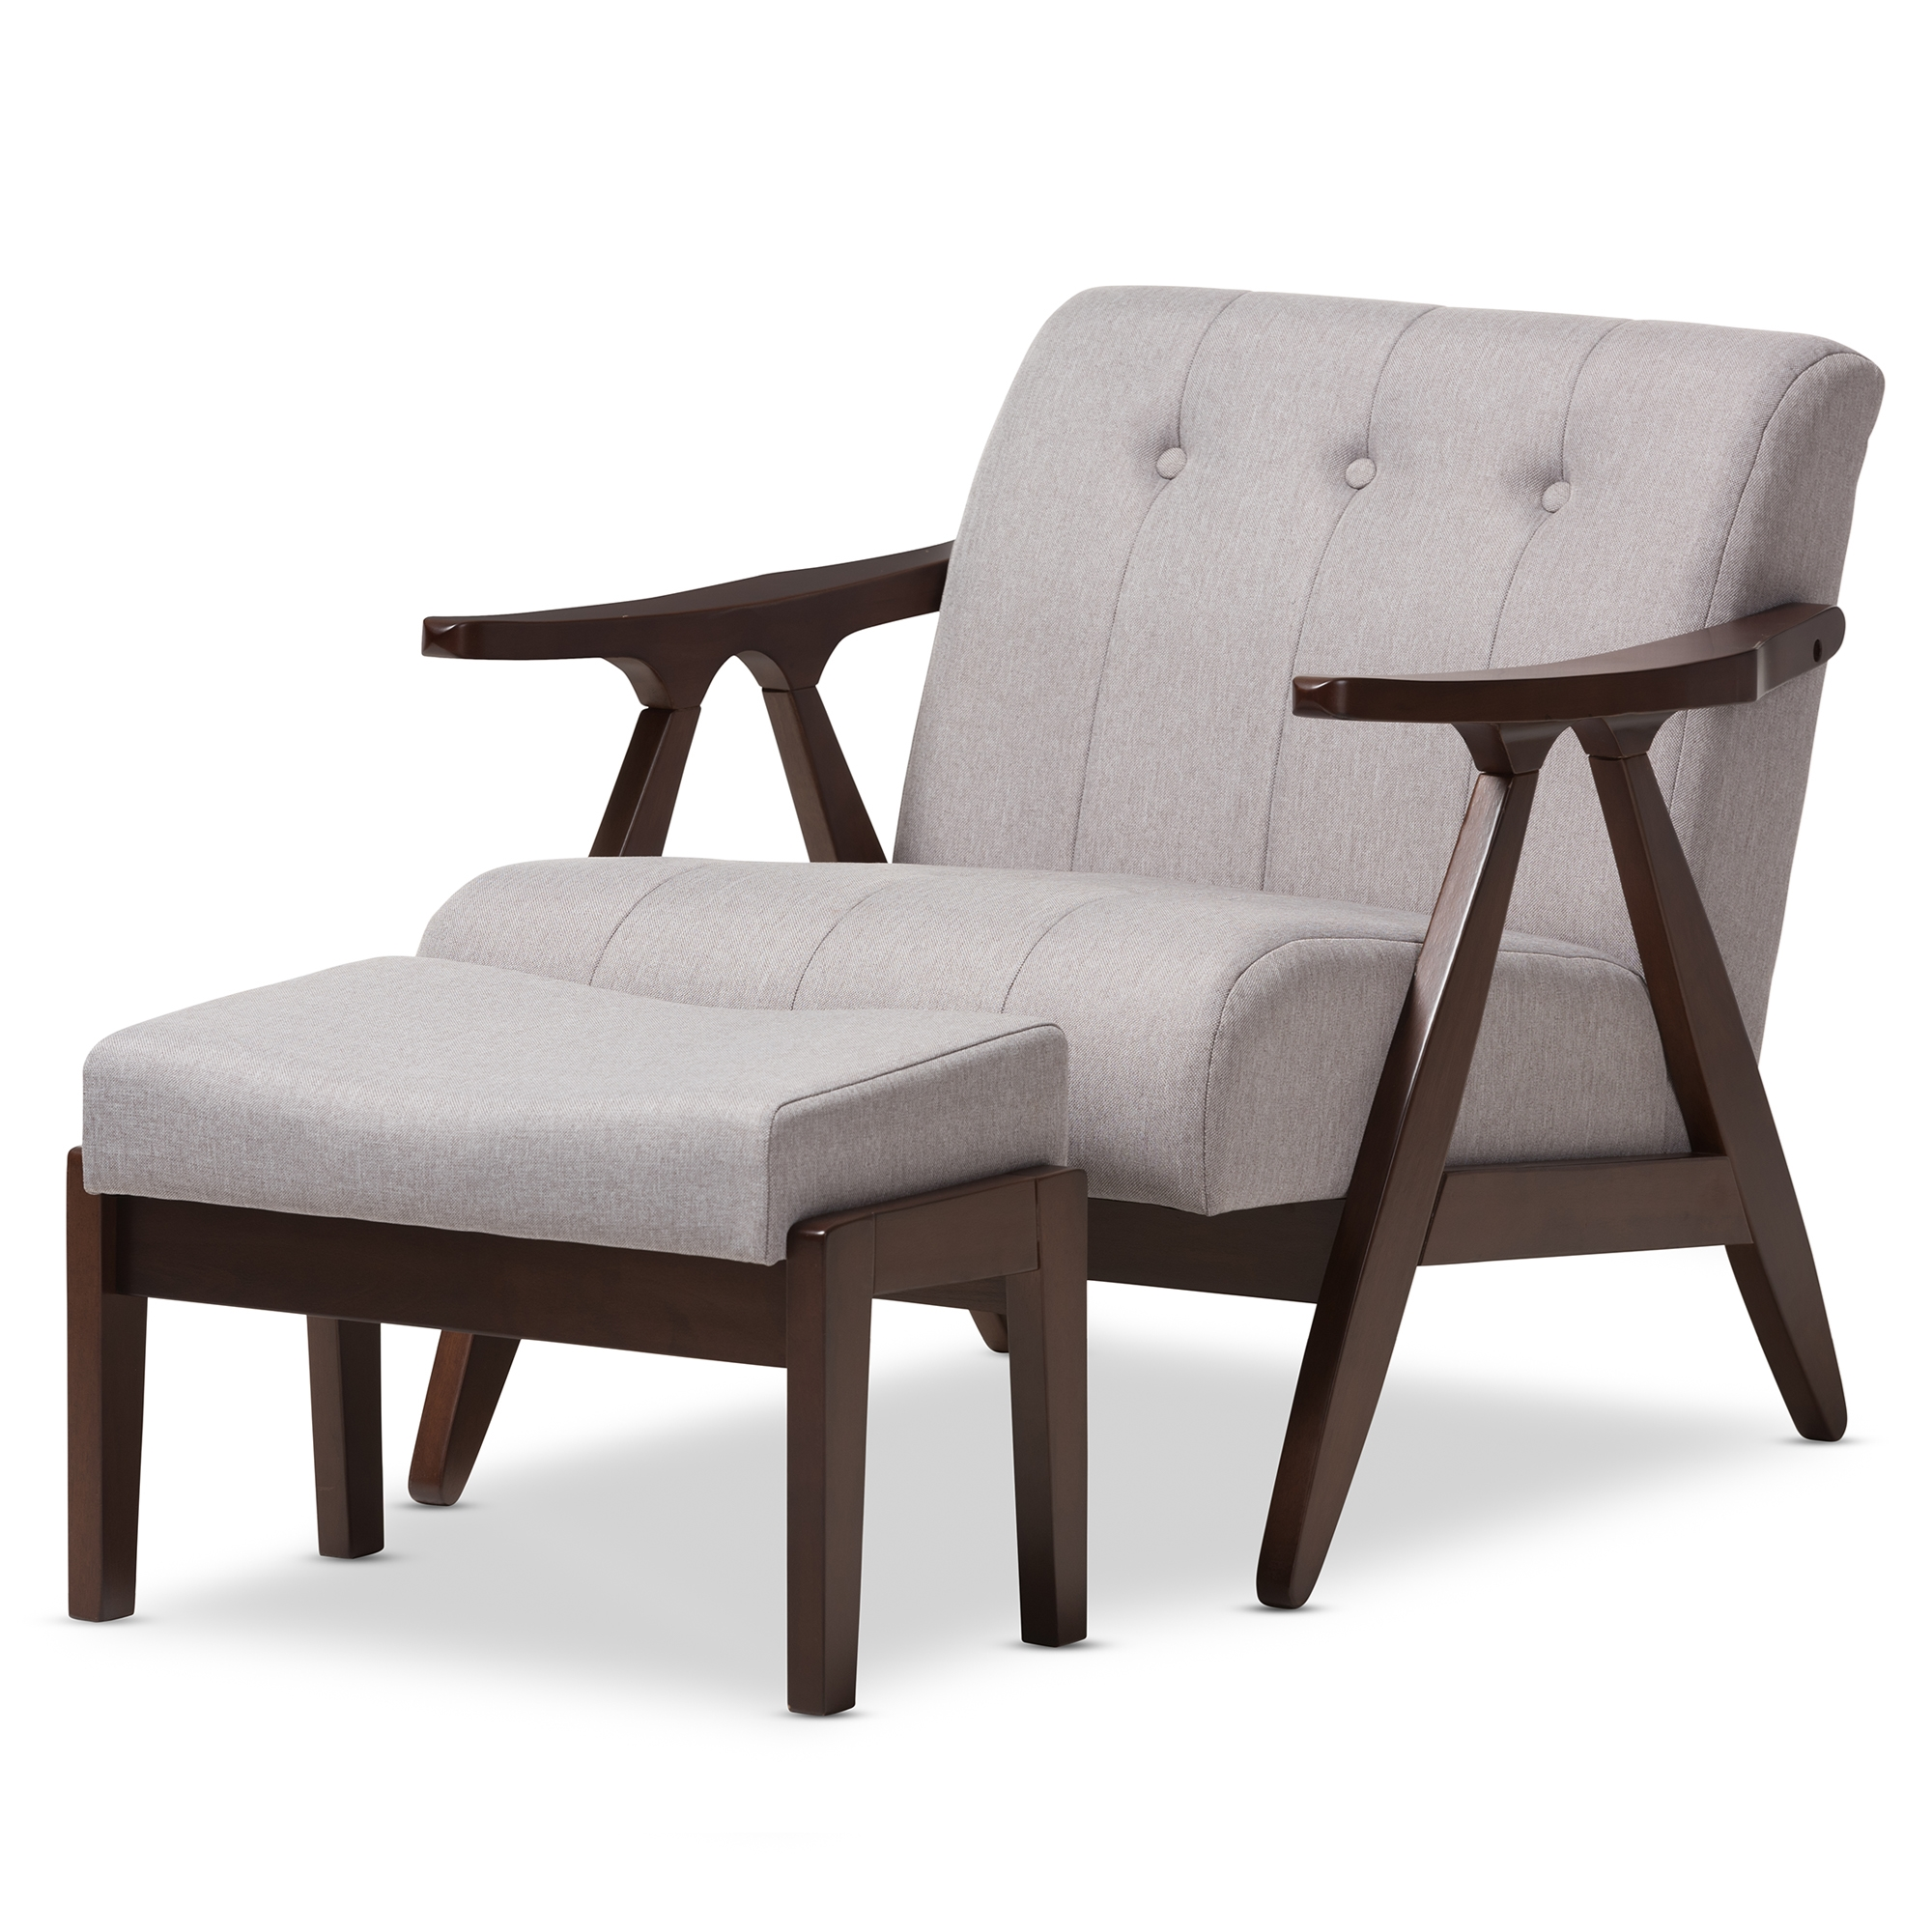 Baxton Studio Enya Mid Century Modern Walnut Wood Grey Fabric Lounge Chair  Set